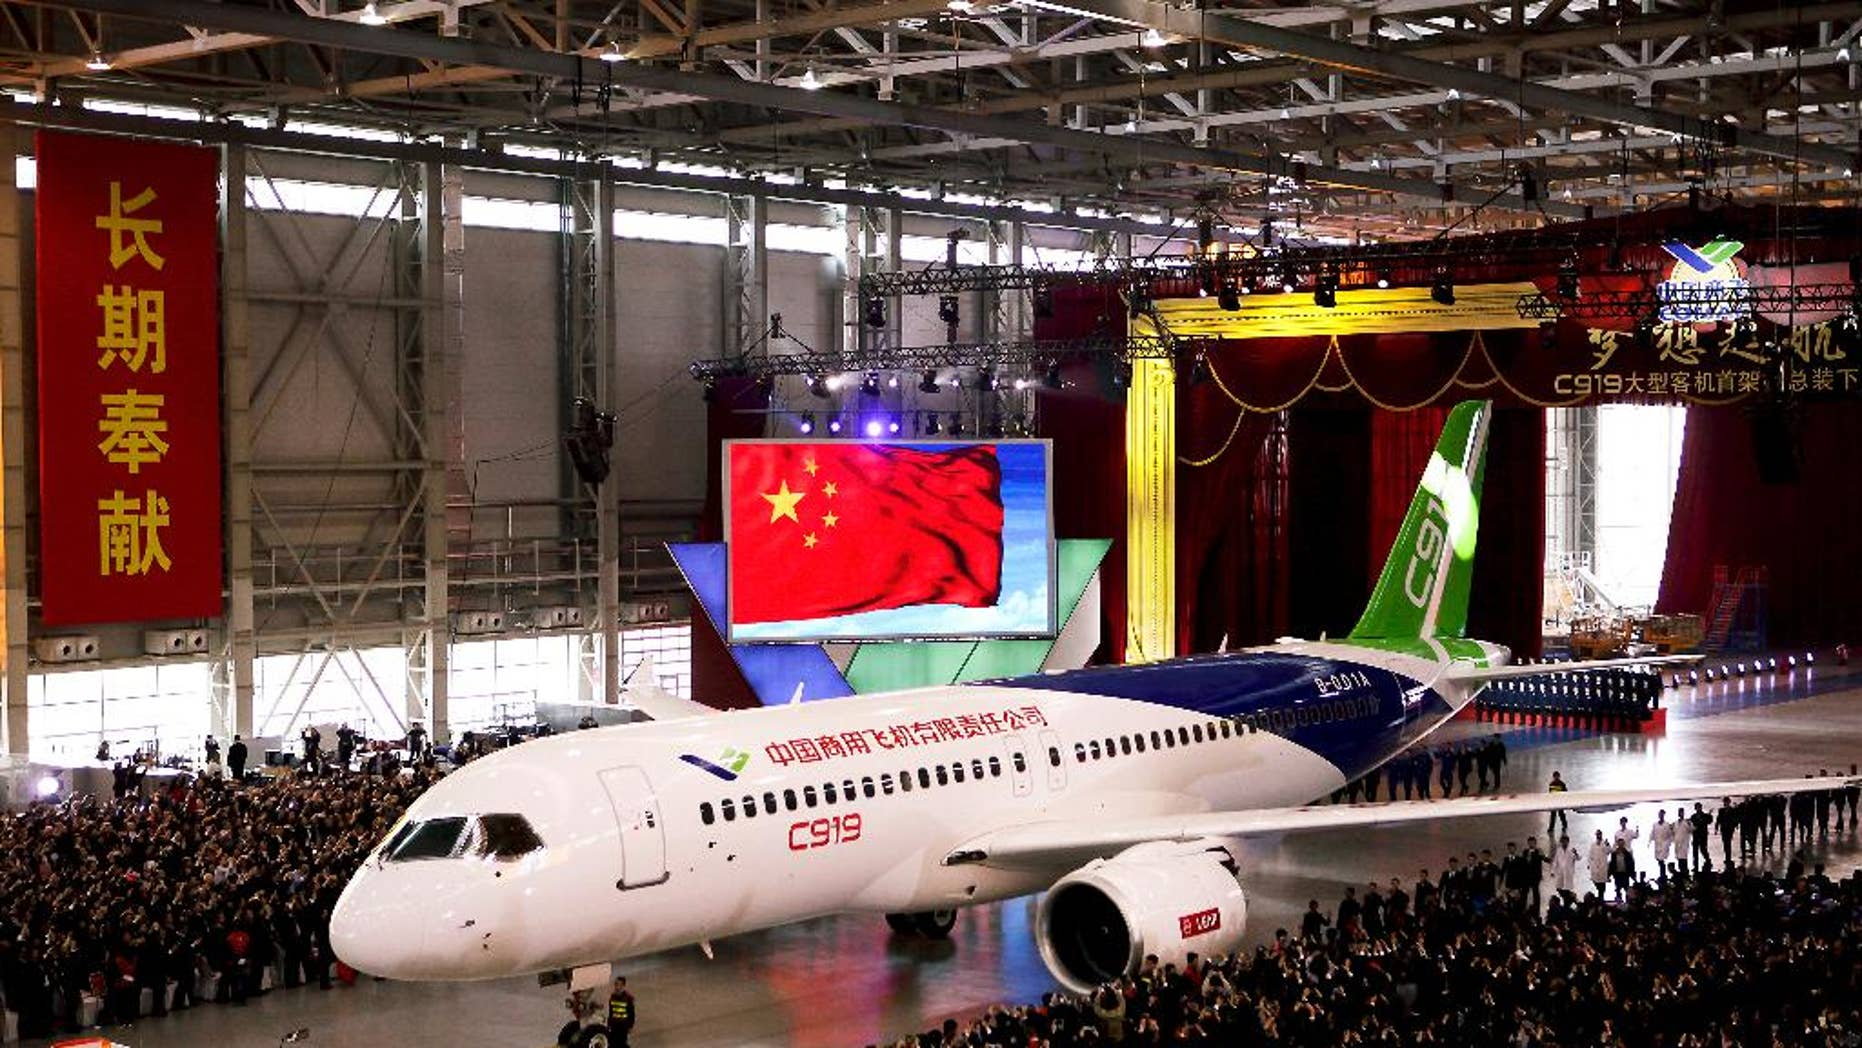 FILE - In this Monday, Nov. 2, 2015 file photo, the first twin-engine 158-seater C919 passenger plane made by The Commercial Aircraft Corp. of China (COMAC) is pulled out of the company's hangar during a ceremony near the Pudong International Airport in Shanghai, China. After years of delays, China's first large homemade passenger jetliner will take to the air for its maiden flight in the first half of this year, state media reported Monday, Feb. 6, 2017. (AP Photo, File)